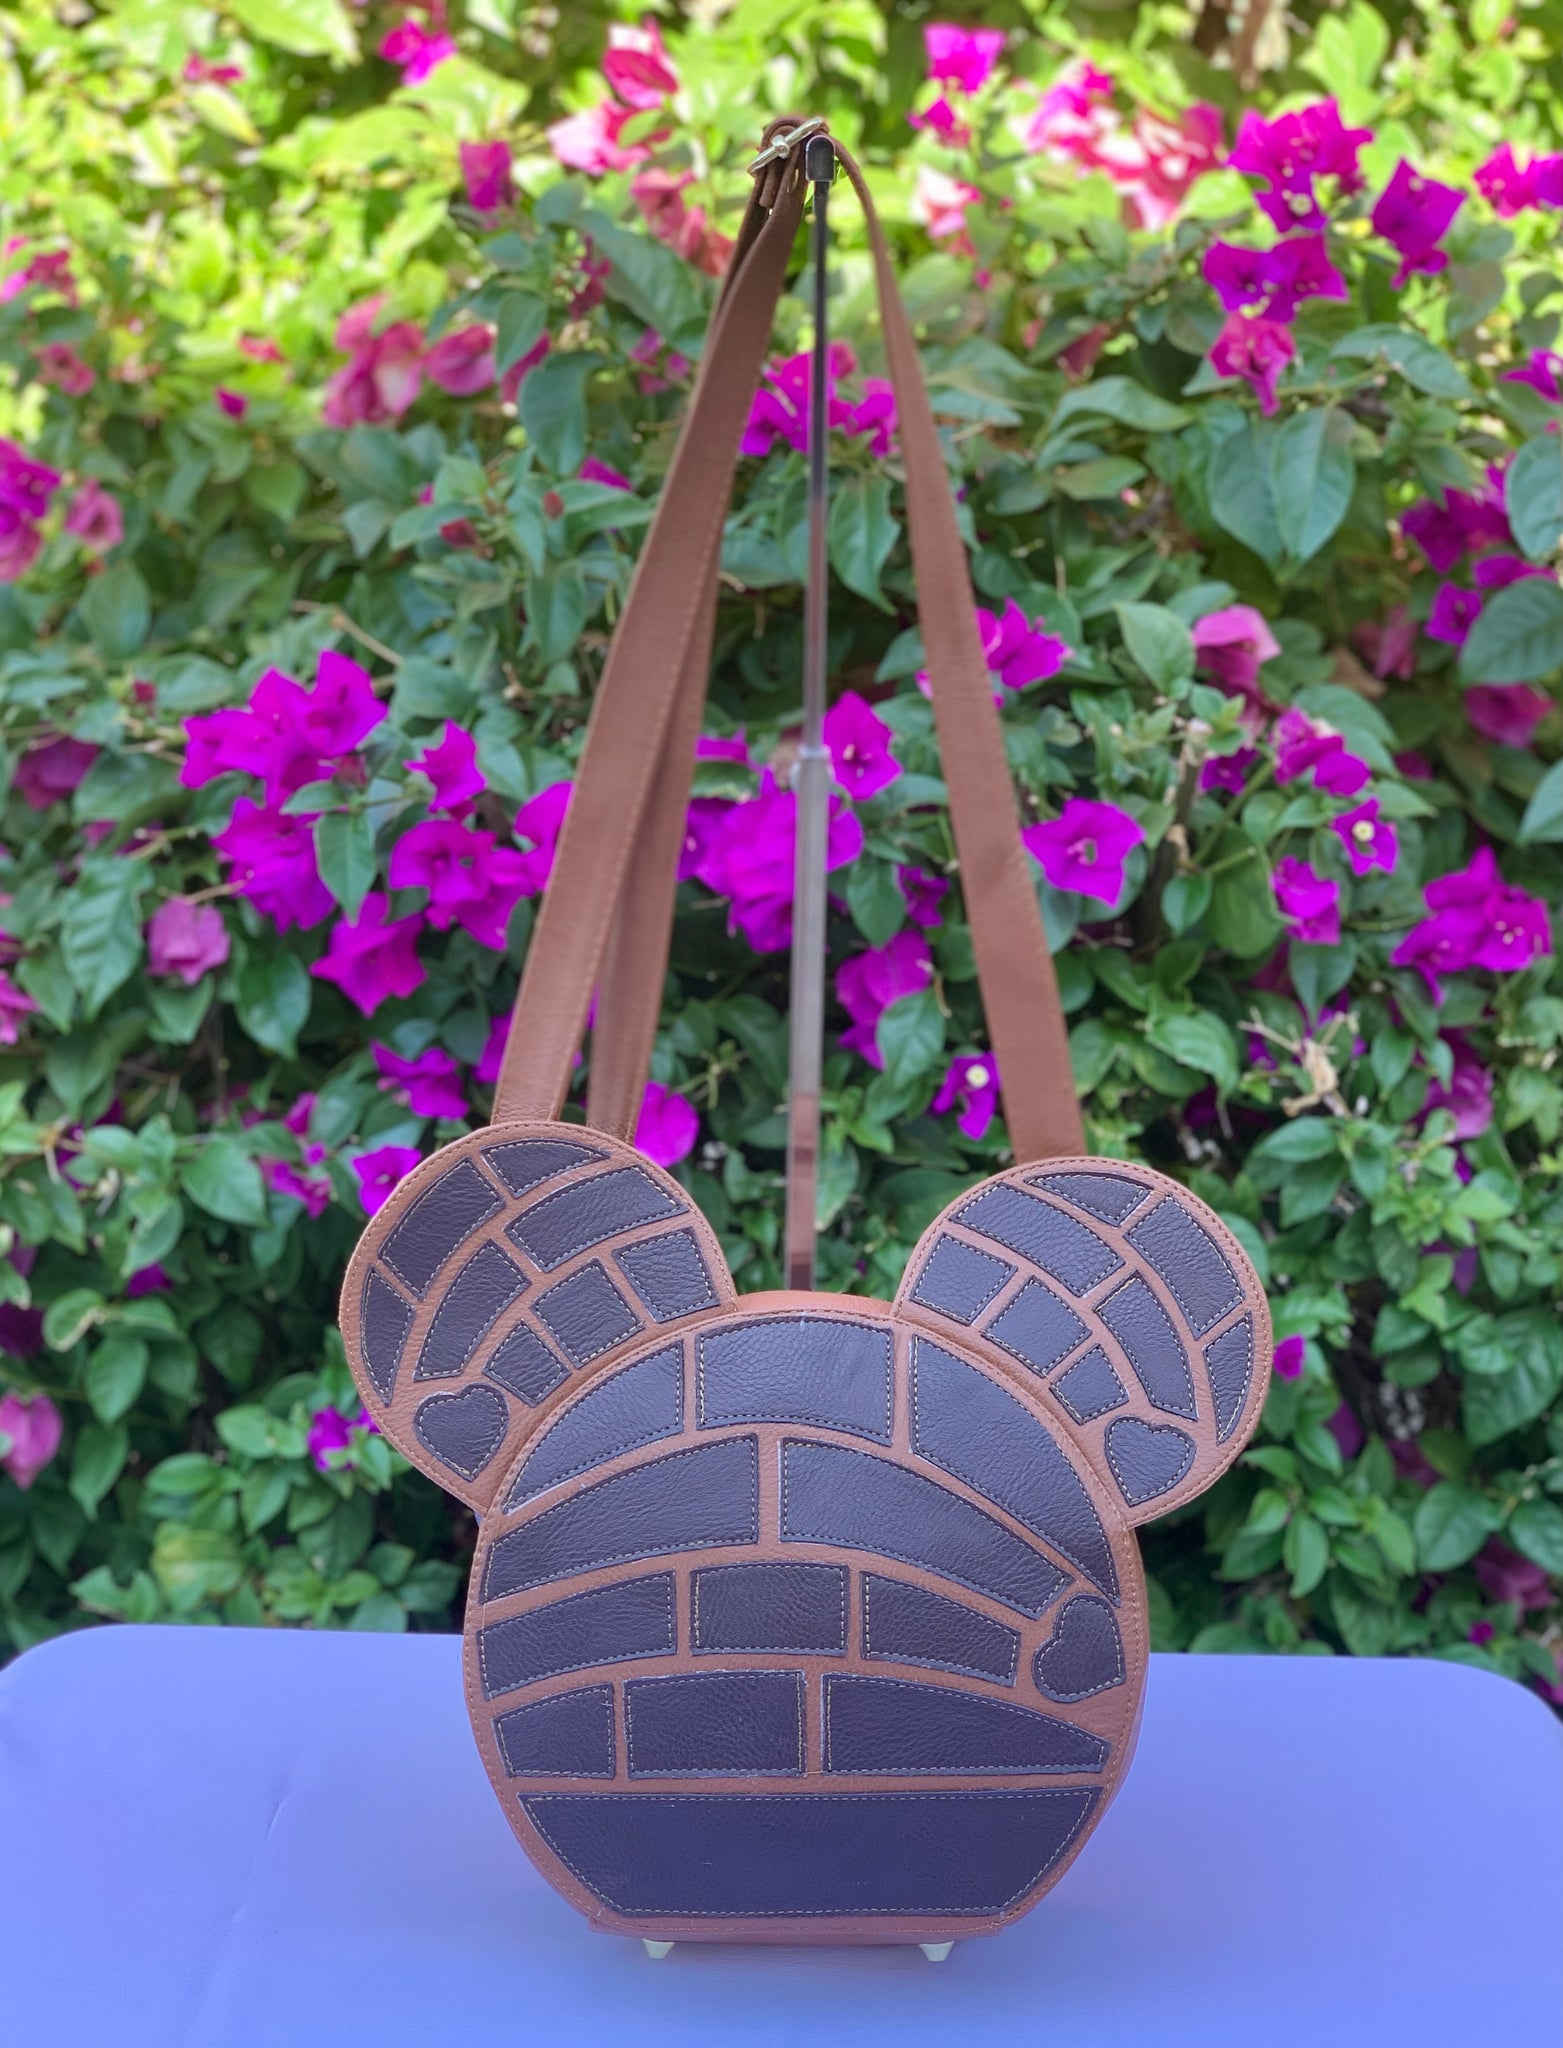 CONCHA MOUSE CROSSBODY HANDBAG- CHOCOLATE